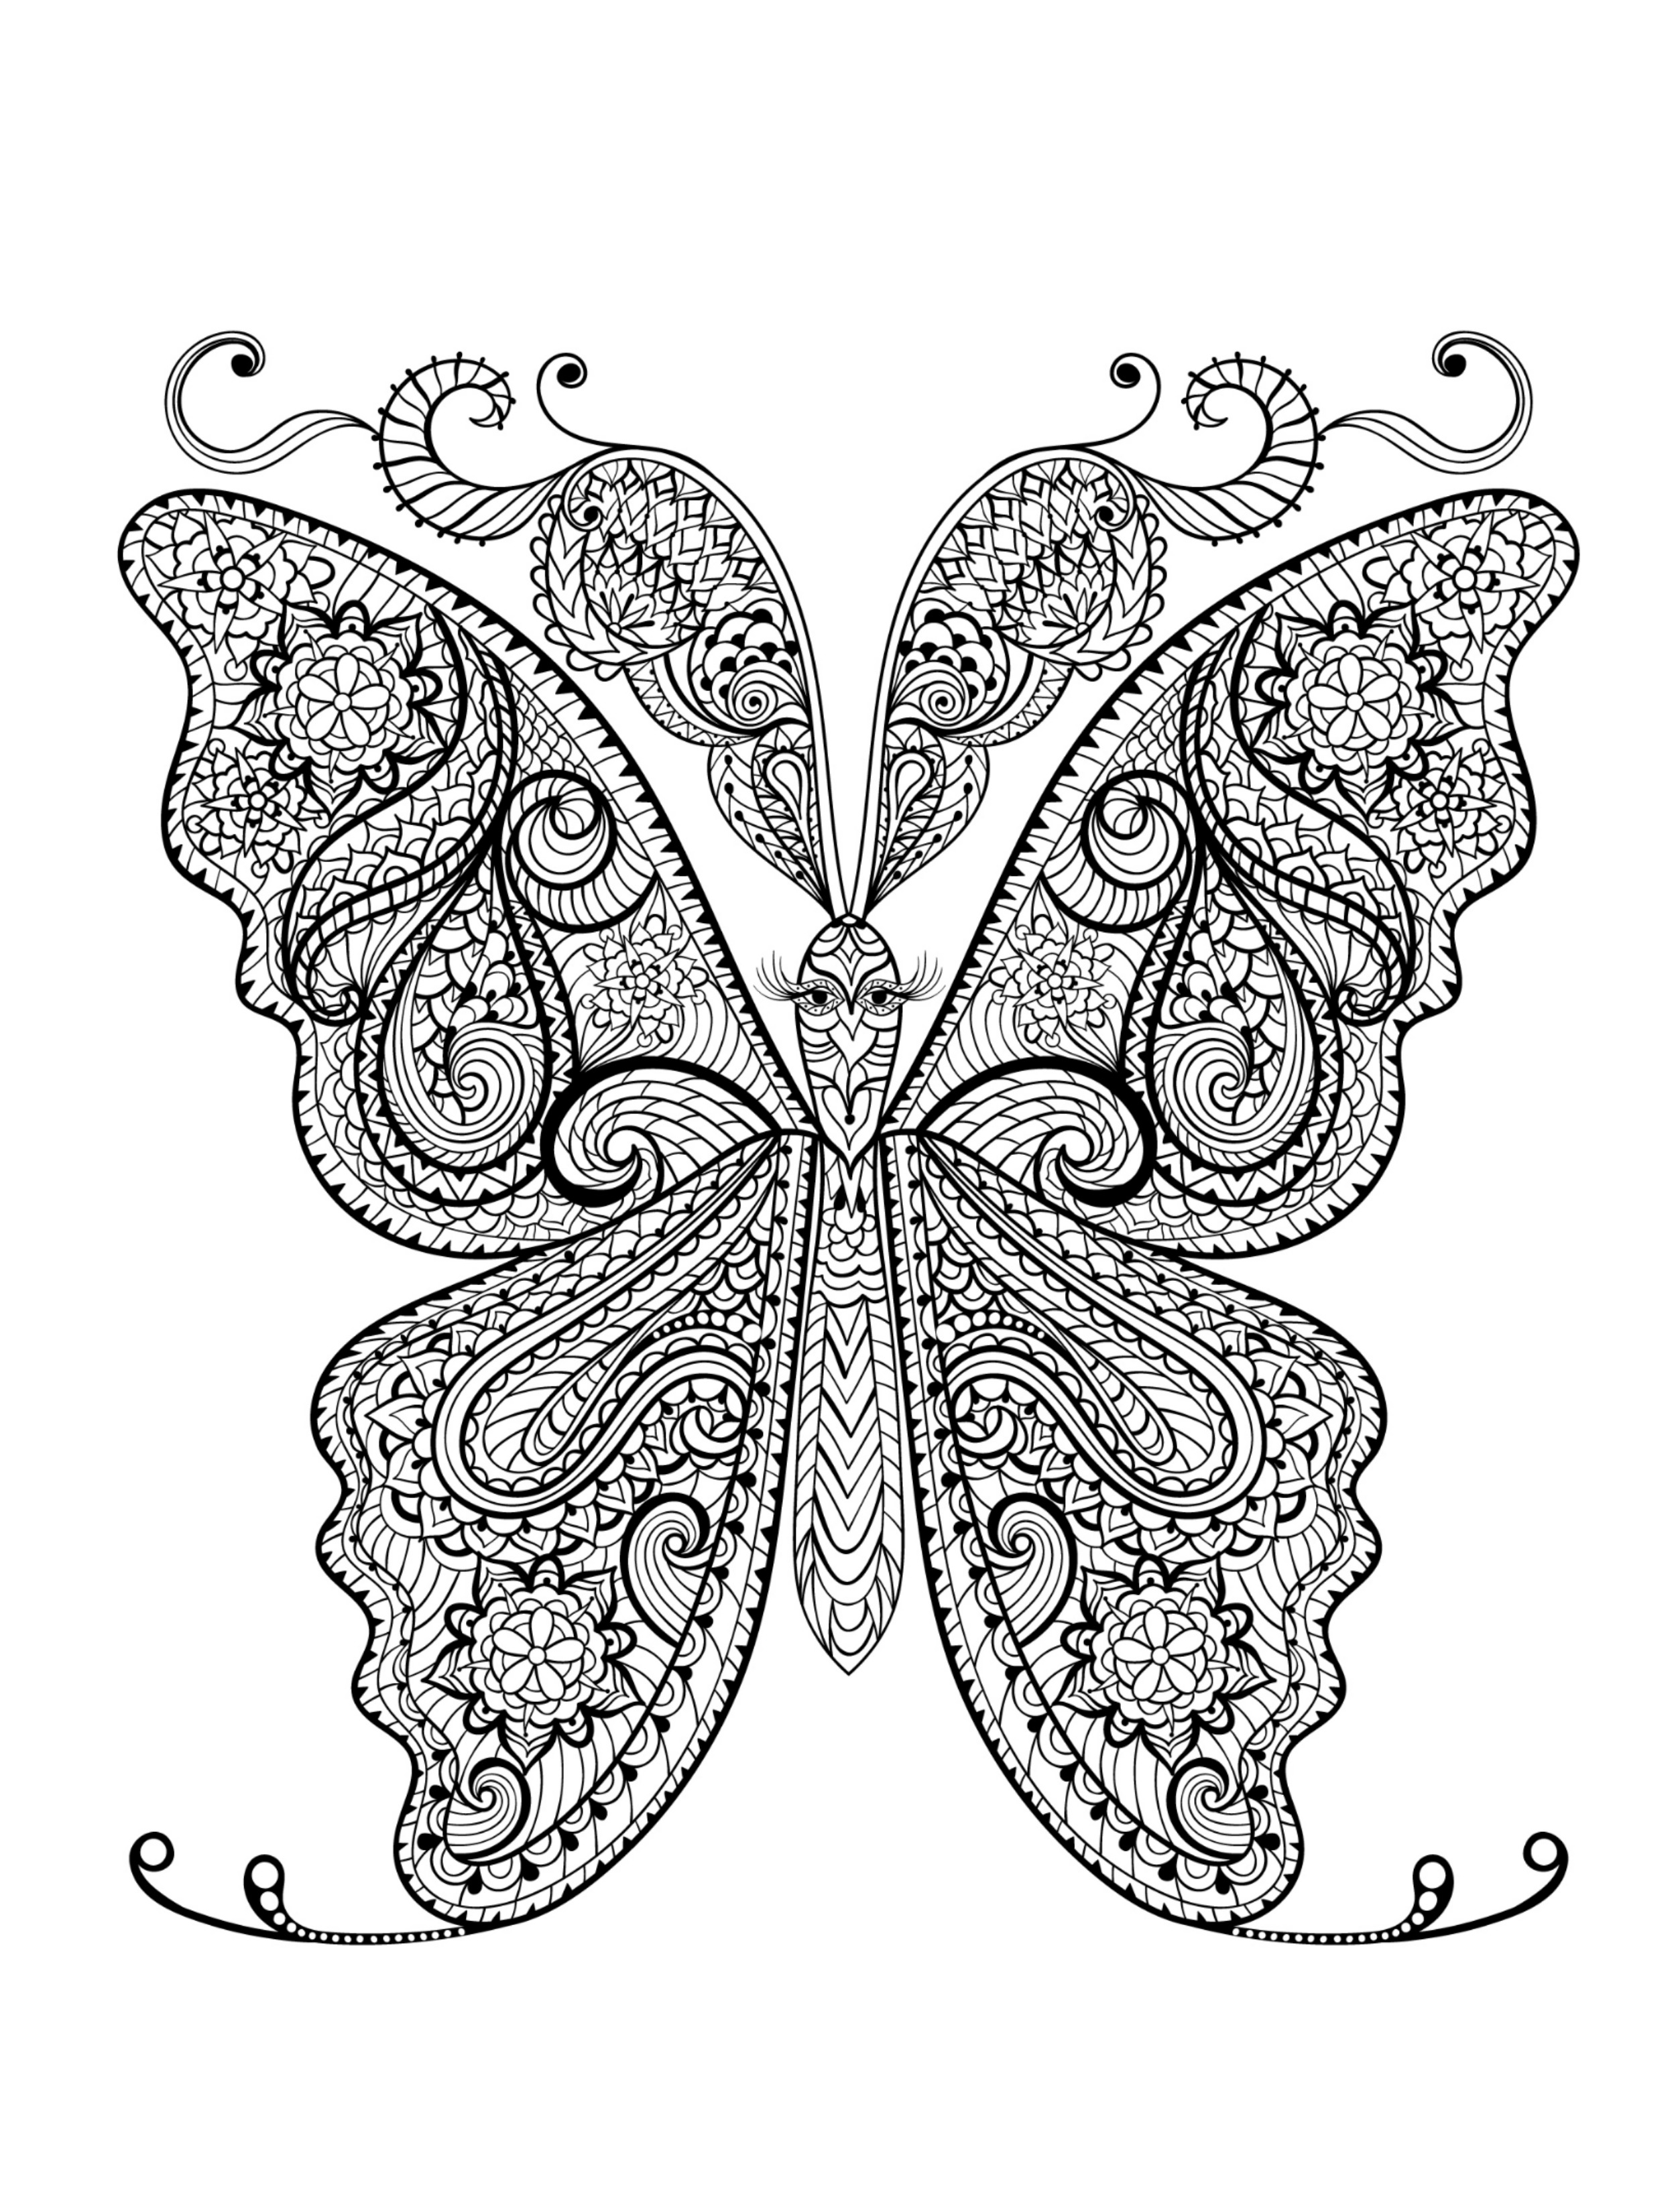 coloring pictures for adults animal coloring pages for adults best coloring pages for for pictures coloring adults